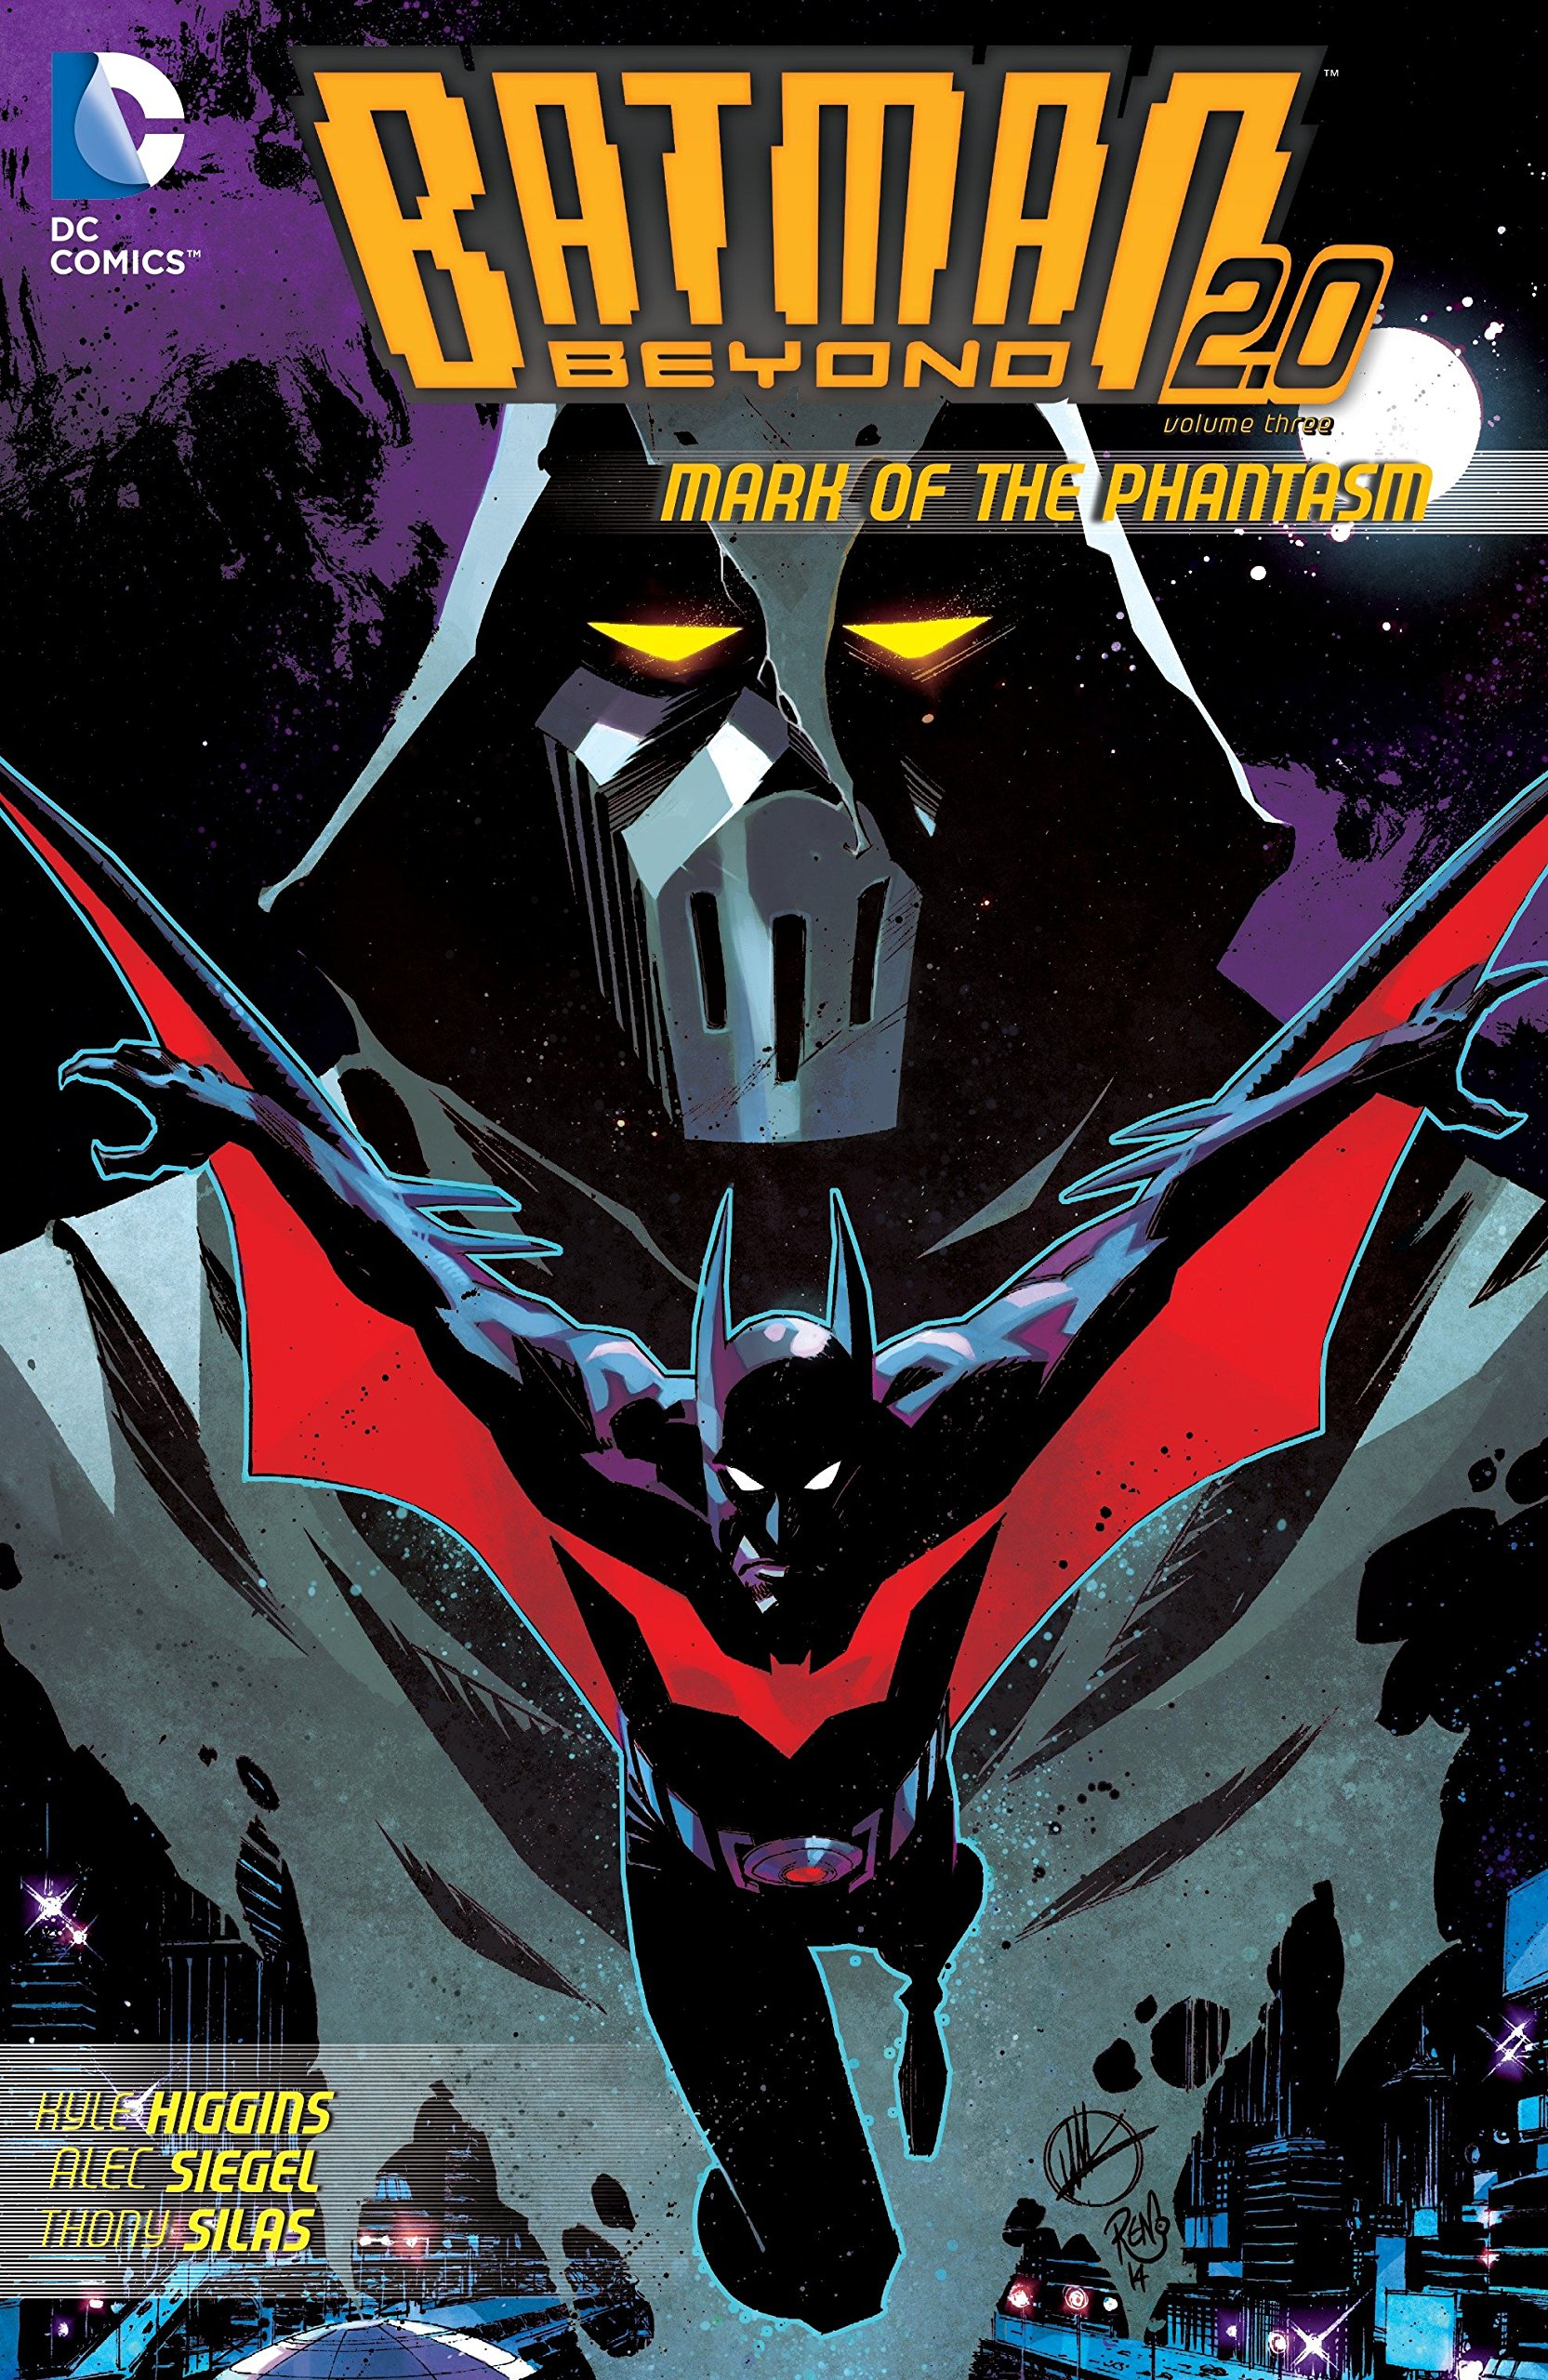 Batman beyond 2 0 vol 3 mark of the phantasm kyle higgins thony silas phil hester 9781401258016 amazon com books